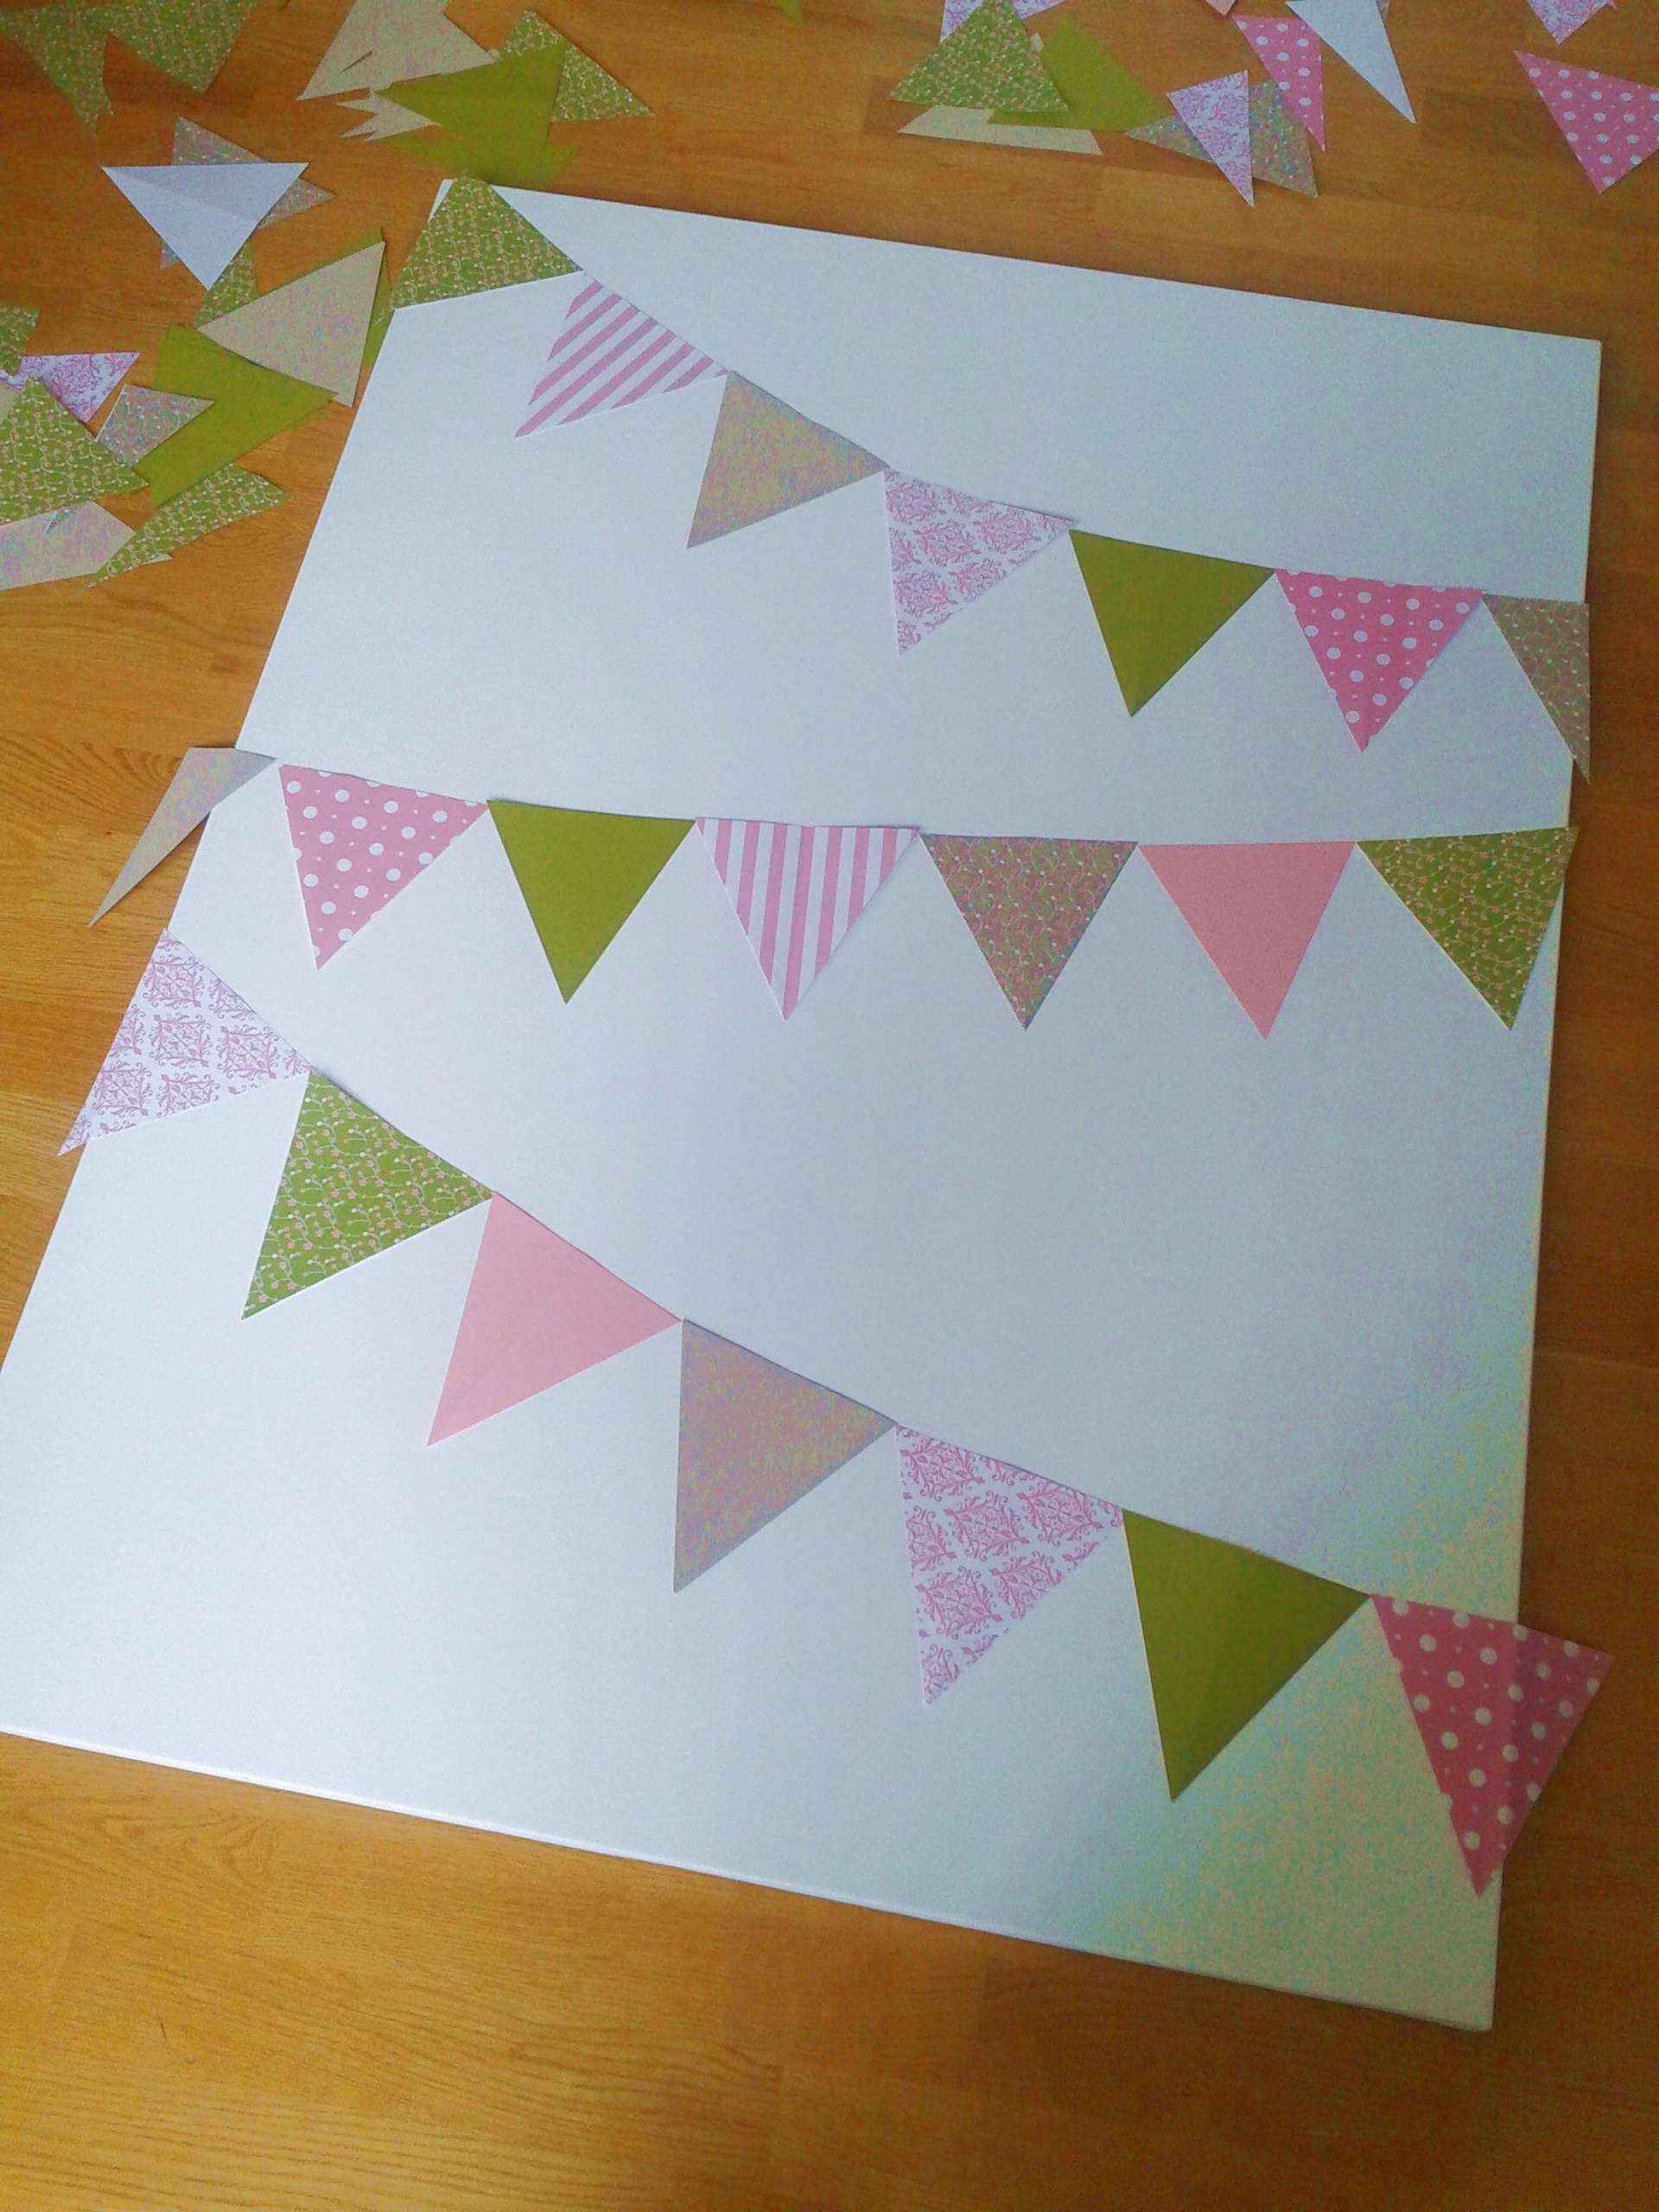 How to scrapbook canvas - Decisions